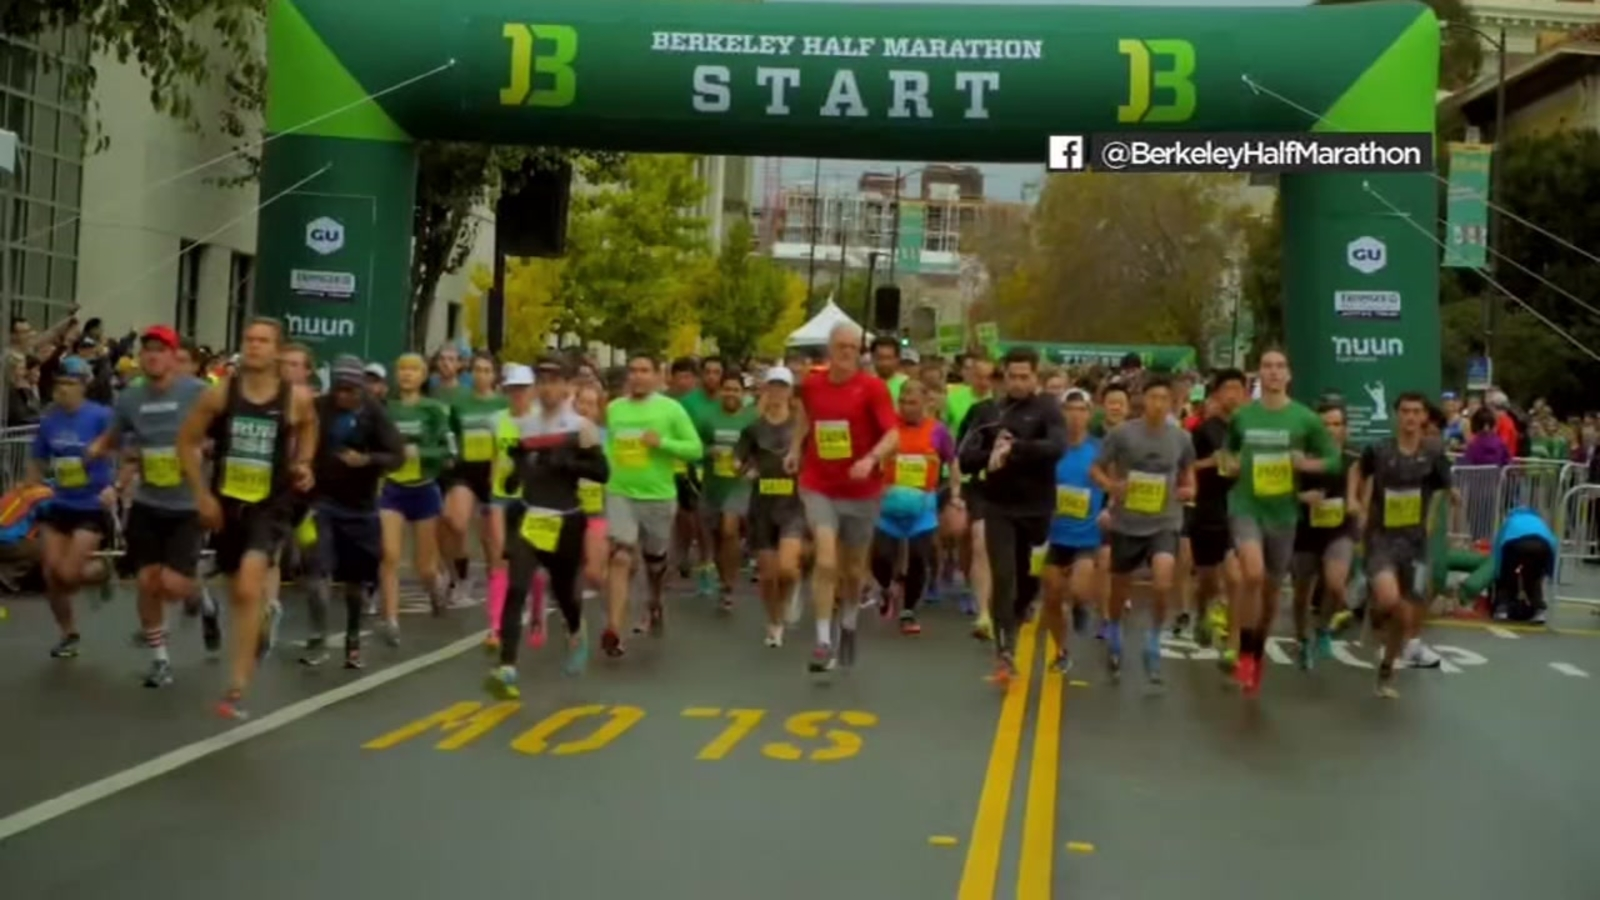 Berkeley Half Marathon back 1 year after cancellation - KGO-TV